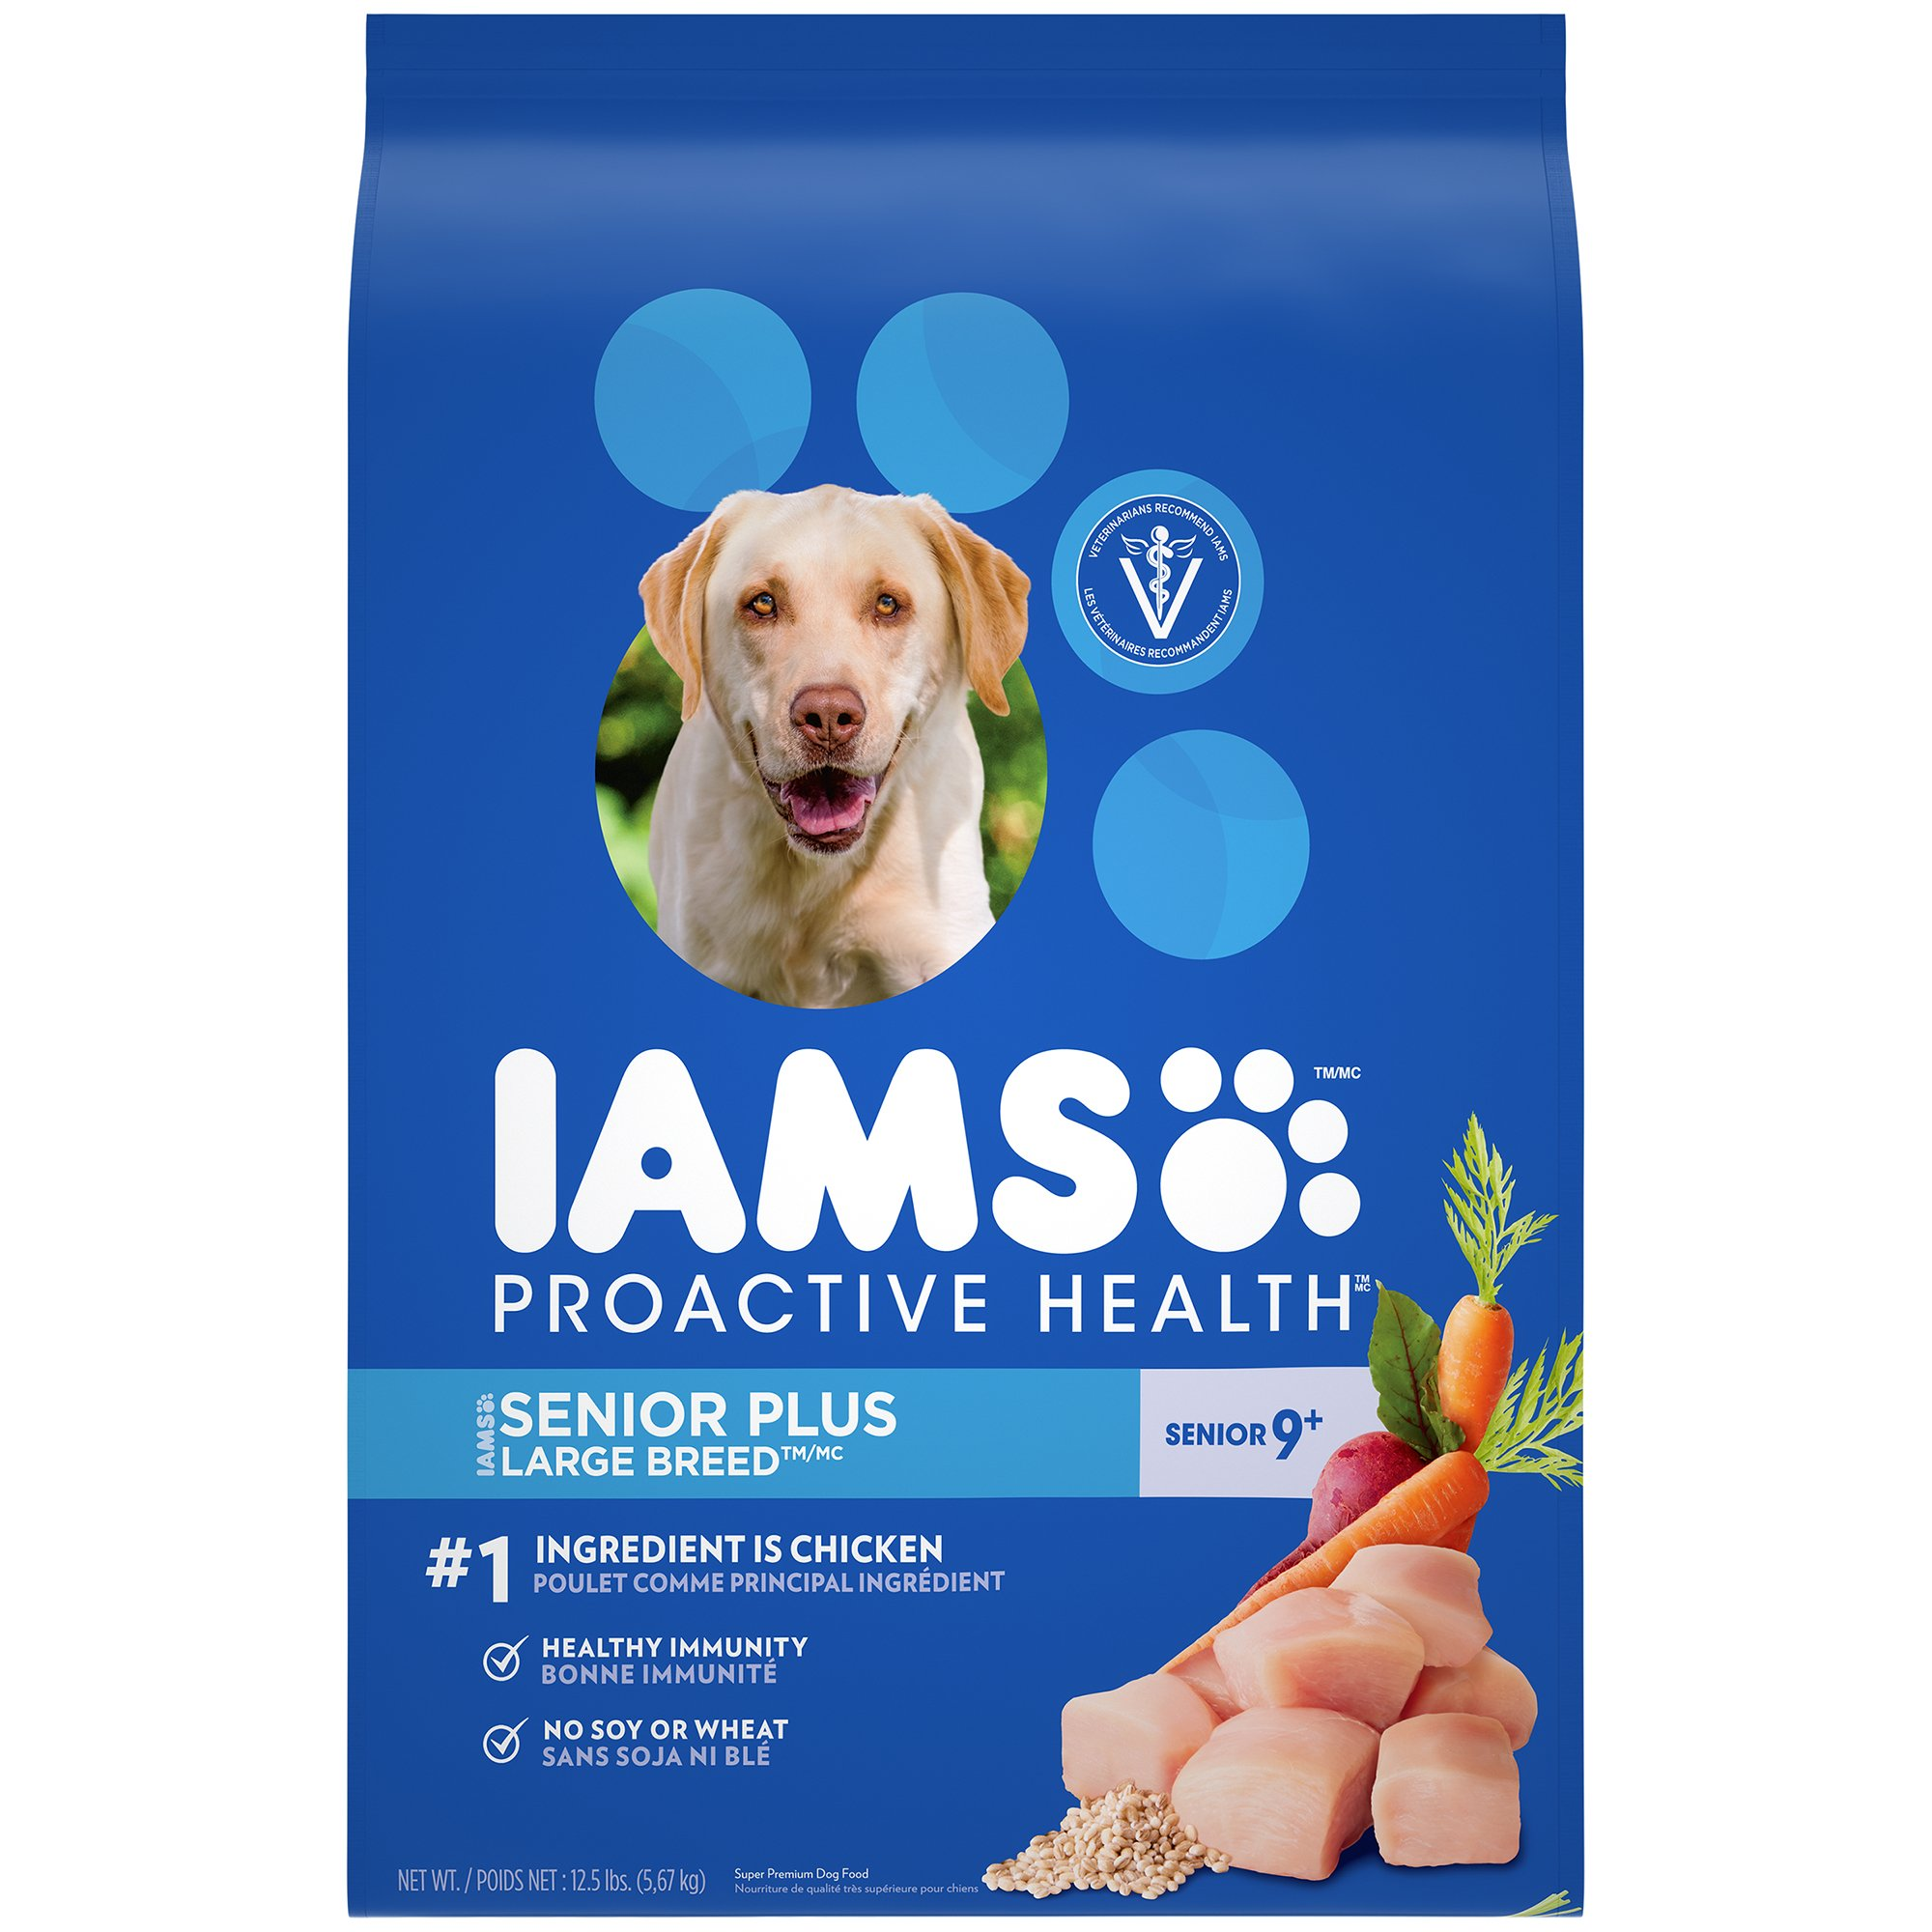 IAMS PROACTIVE HEALTH Senior and Mature Adult Dry Dog Food Standard Packaging